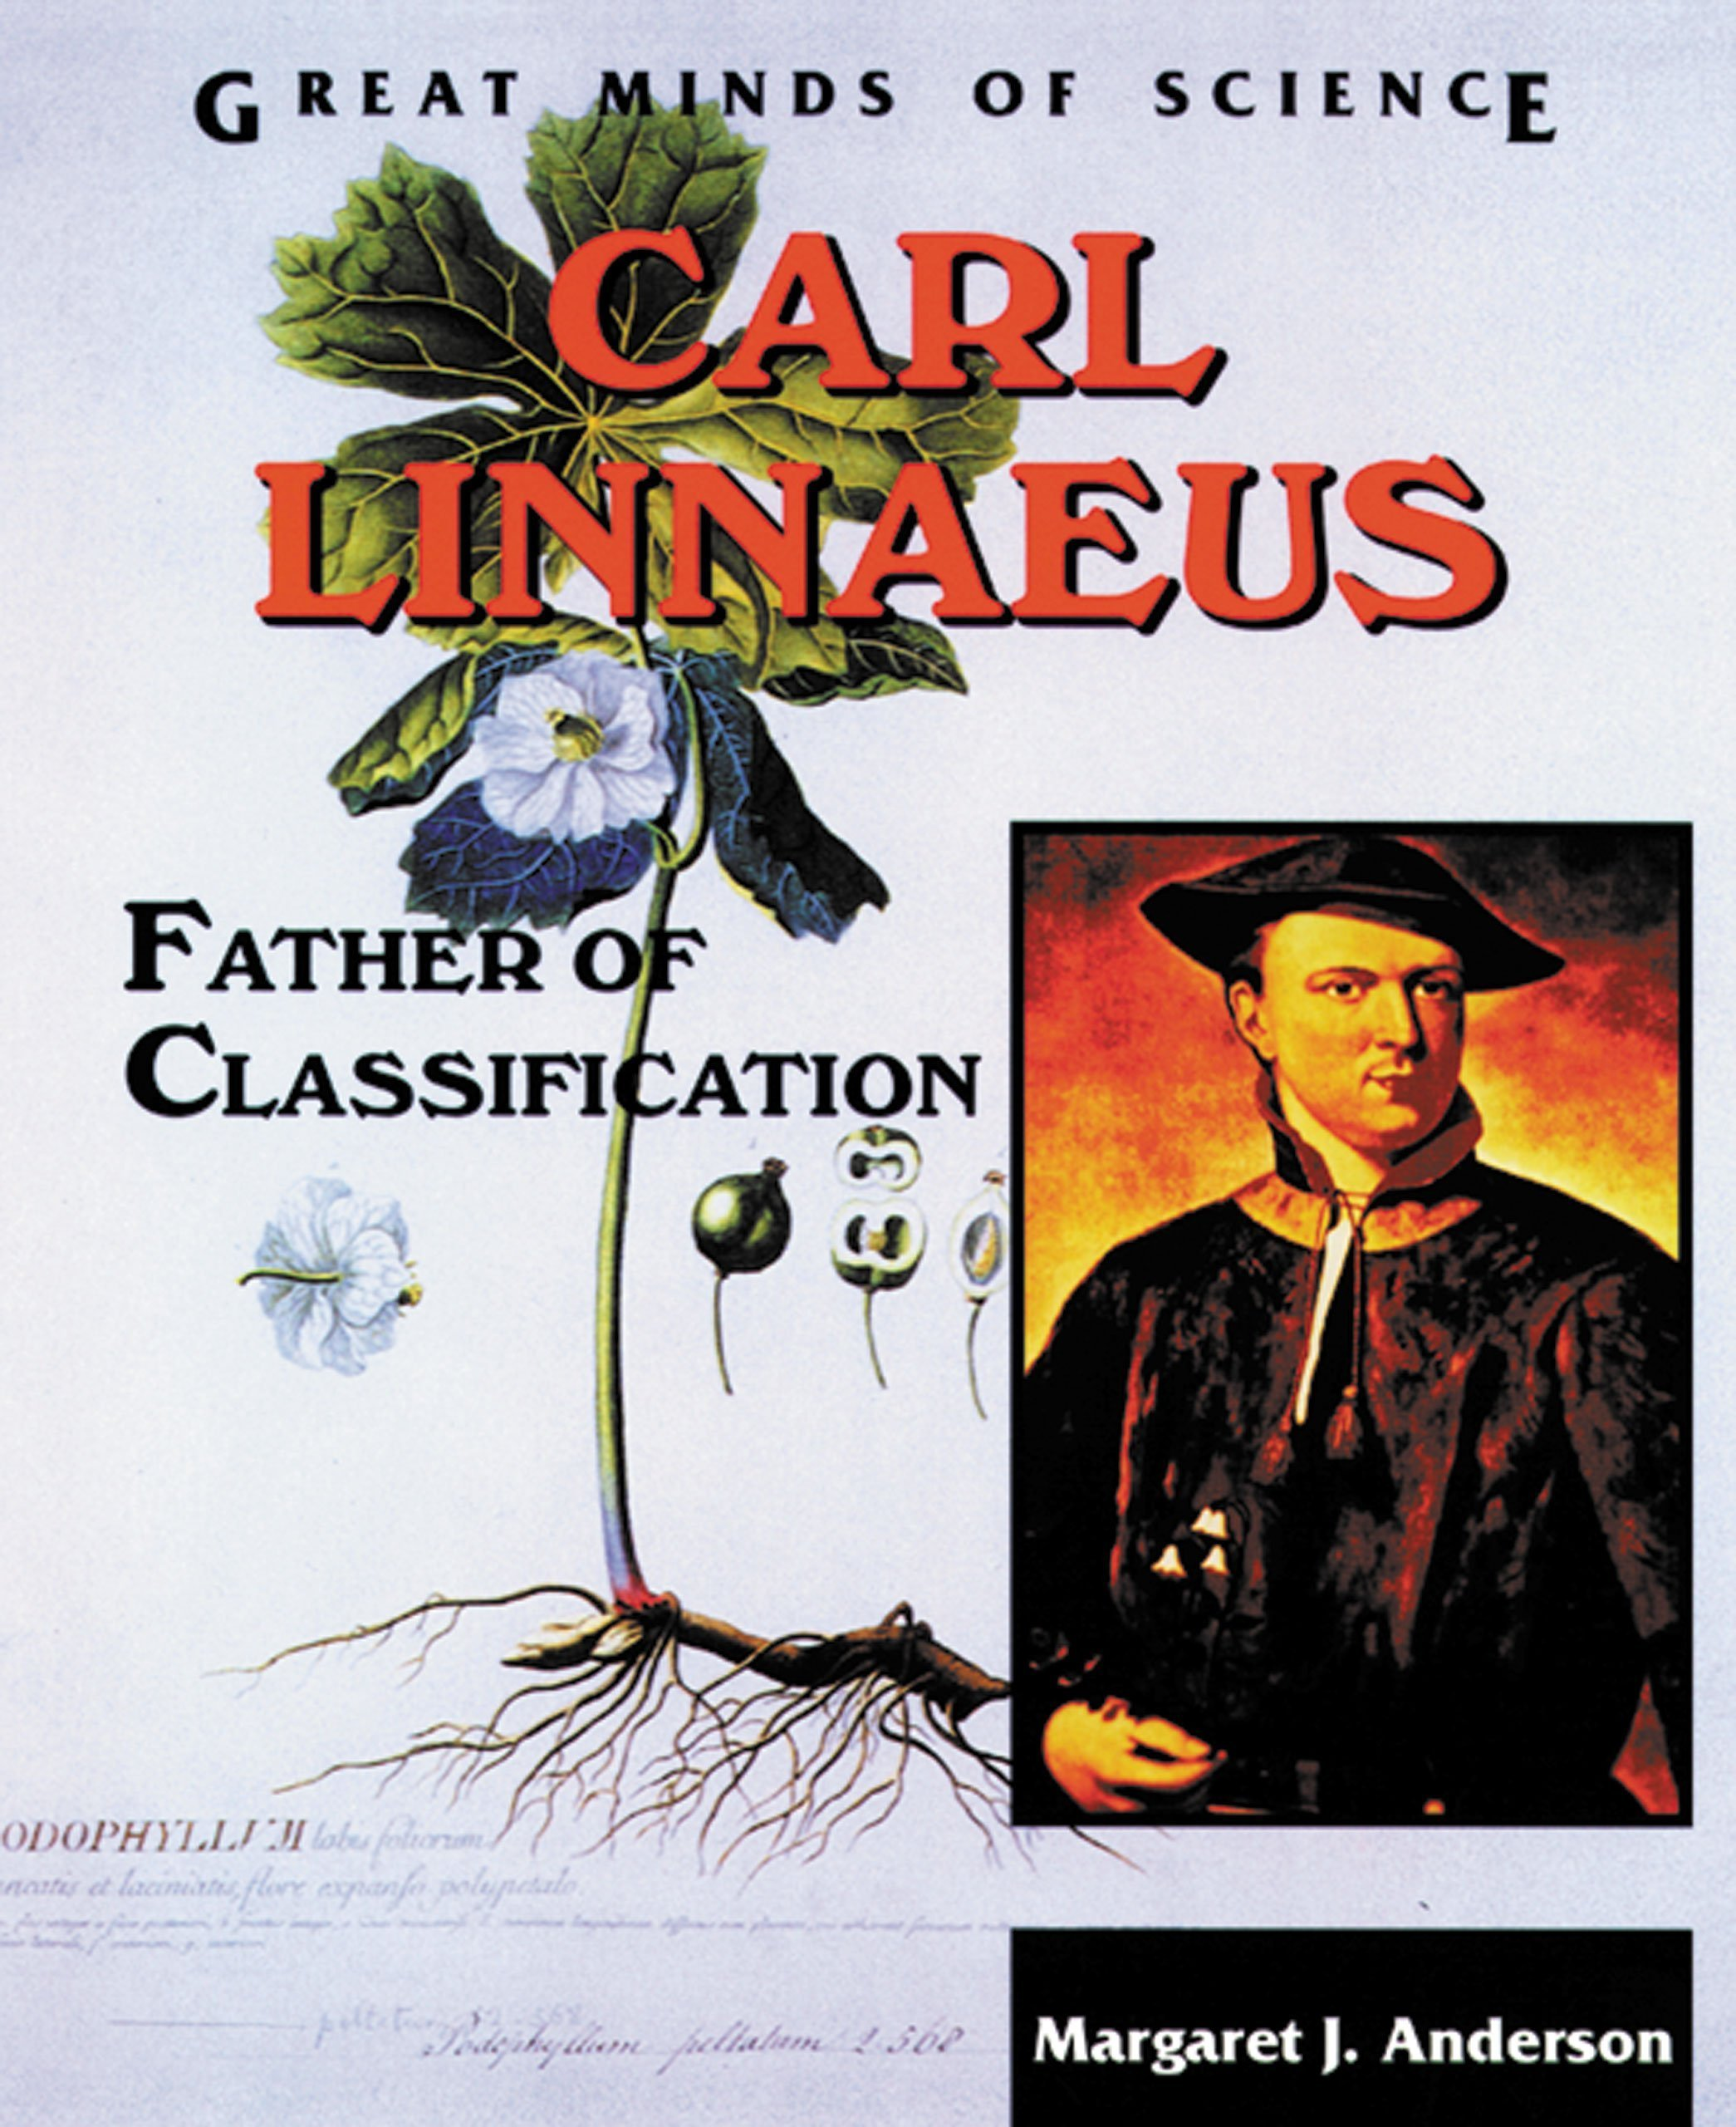 Carl Linnaeus: Father of Classification (Great Minds of Science)